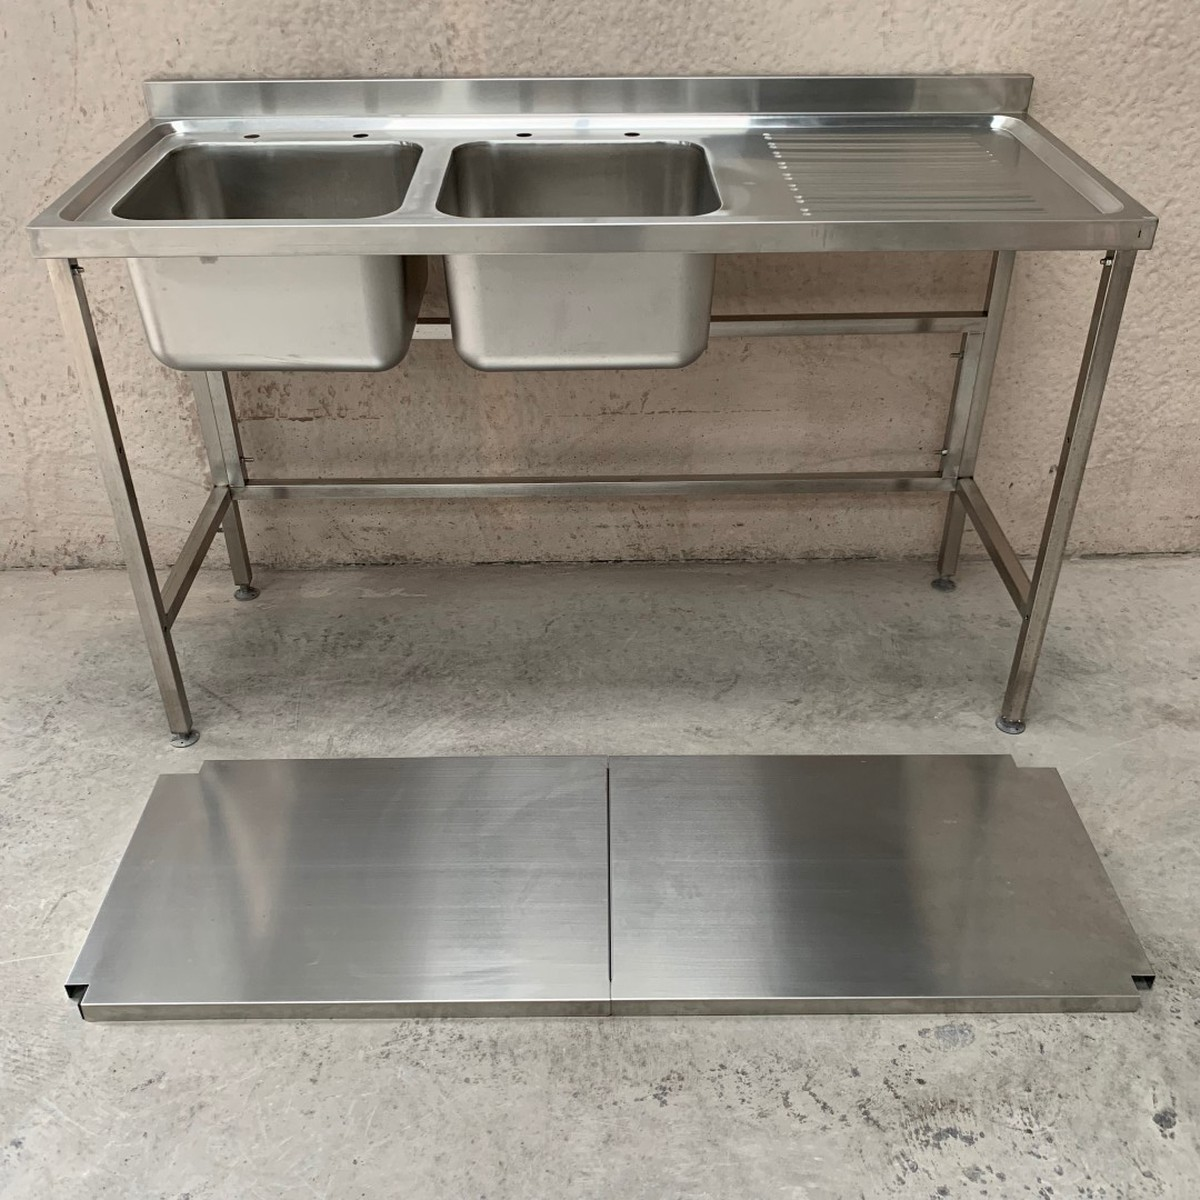 Stainless Steel Double Sink Secondhand Catering Equipment Double Sinks New